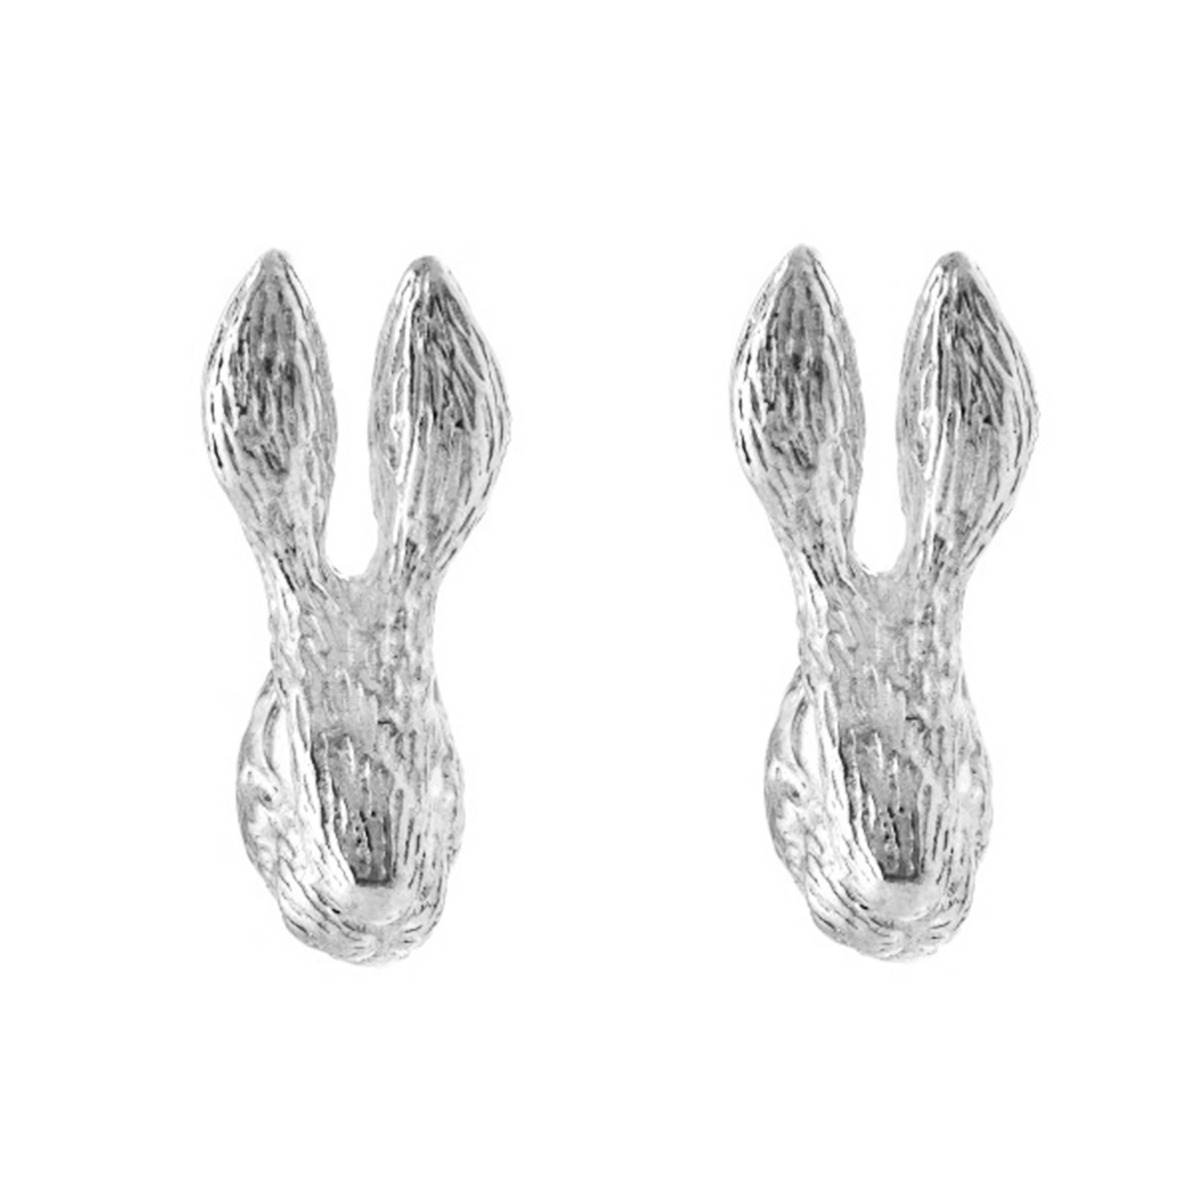 Chinese zodiac stud earrings (rabbit)